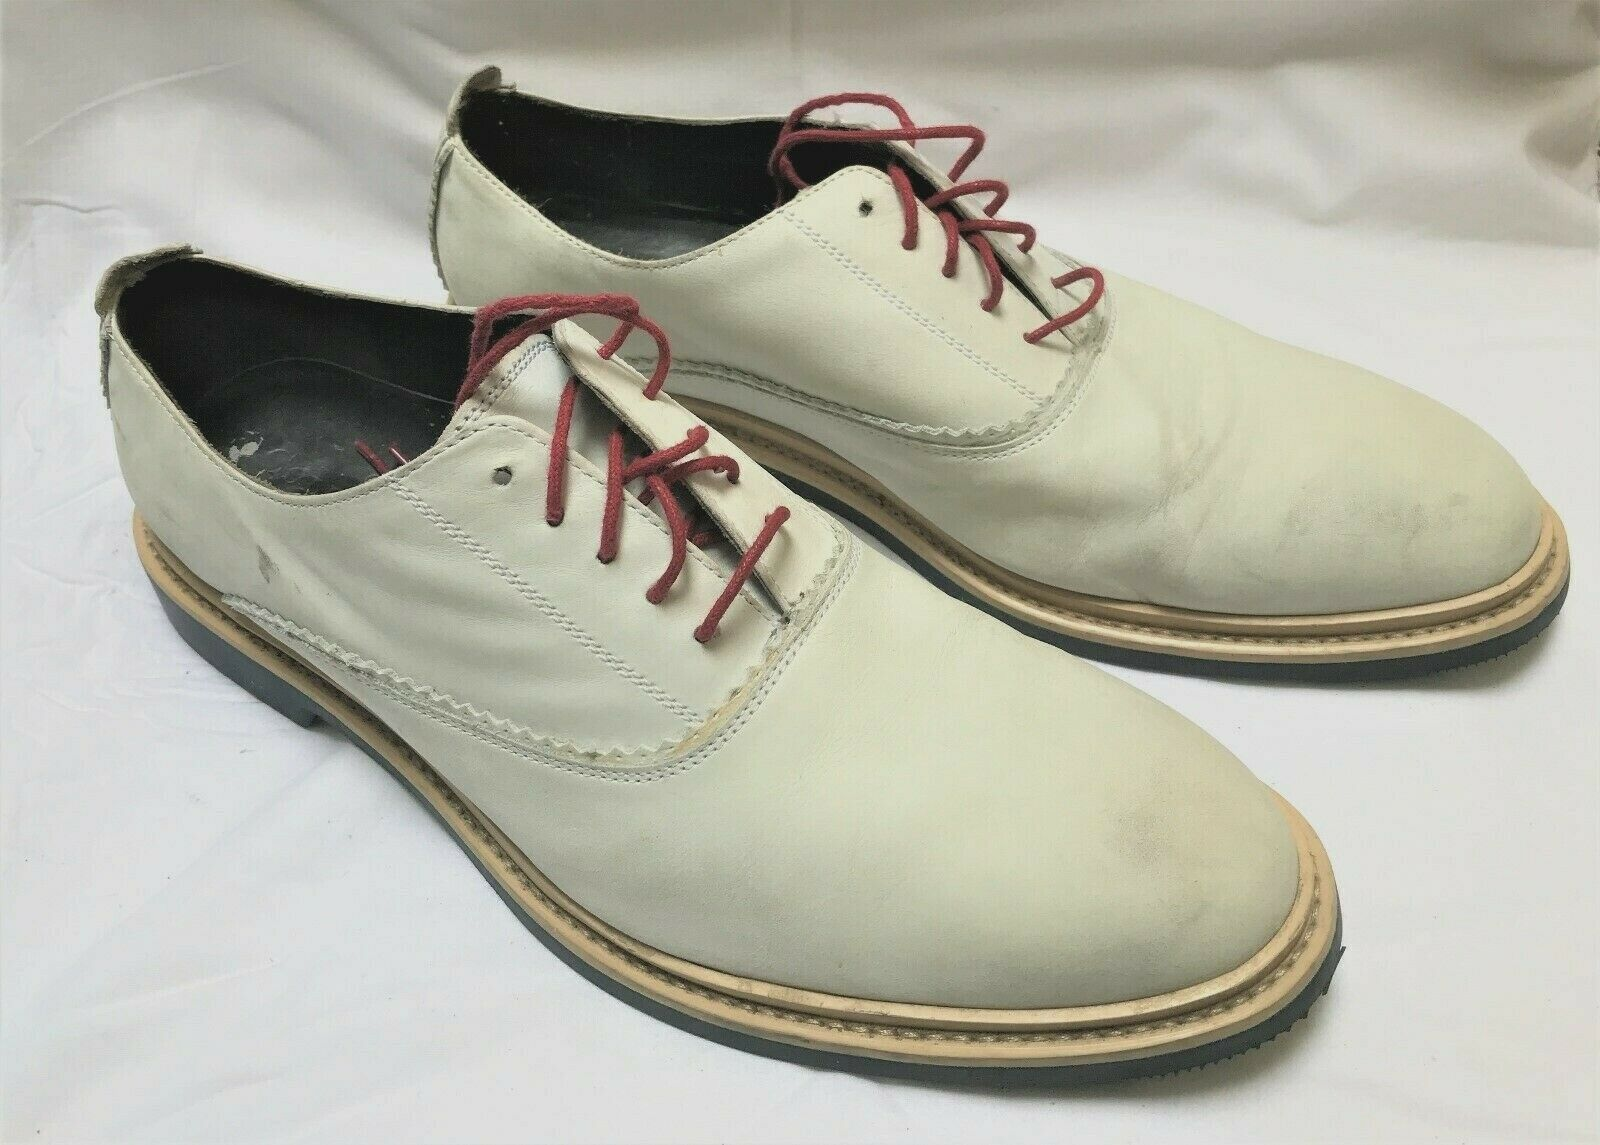 GREAT MEN COLE HAAN LEATHER NIKEAIR COMFORT SHOES OFF WHITE SIZE  10 M